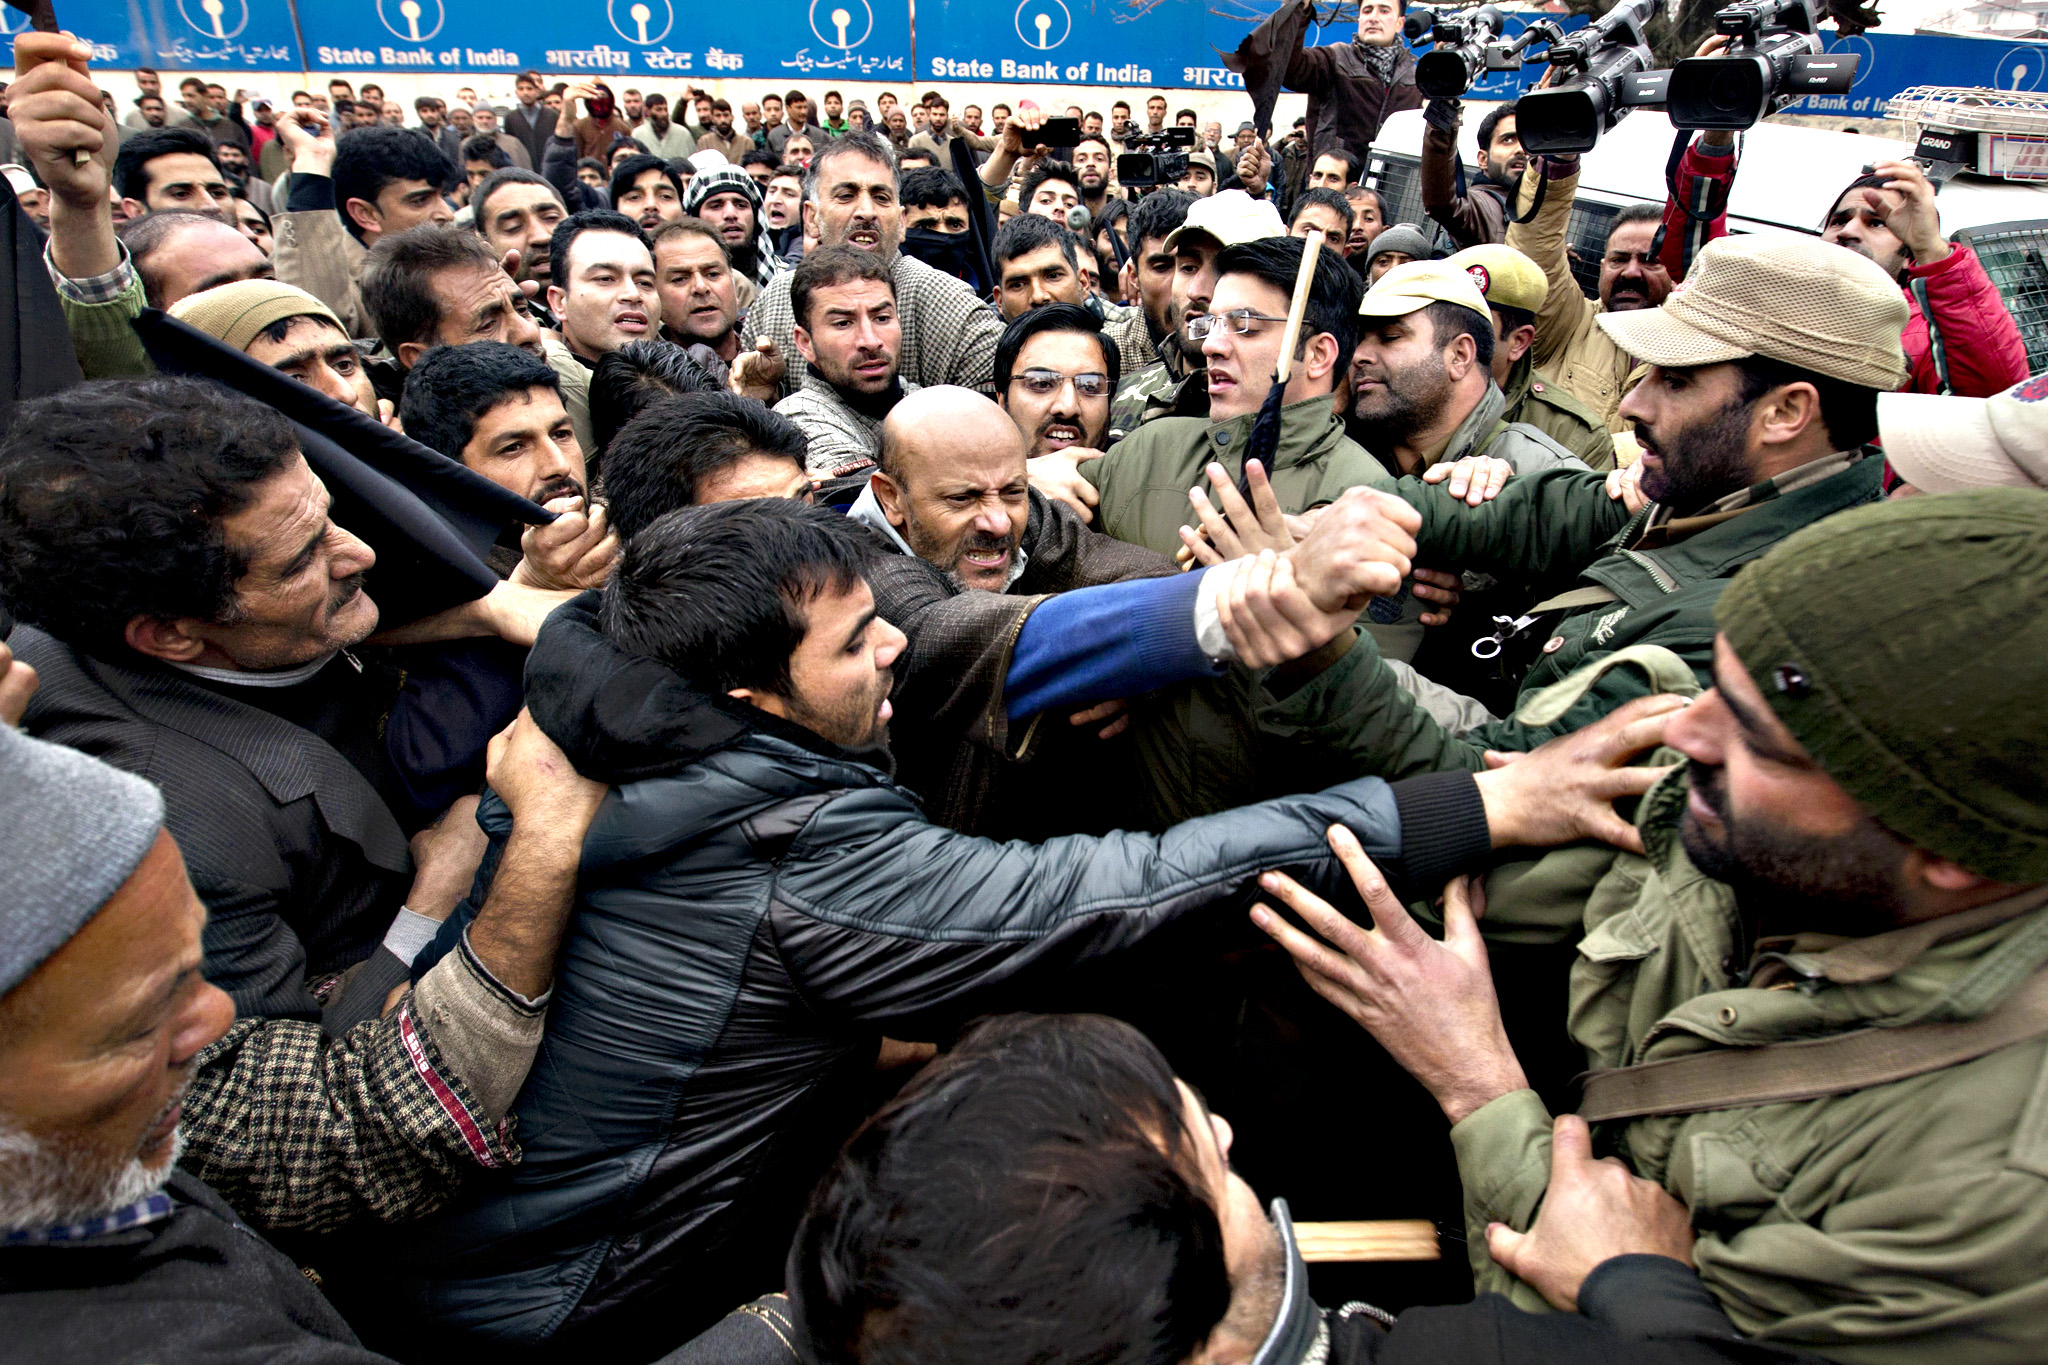 Activists of the Awami Ittihad party get into a scuffle with Indian policemen as they are stopped during a protest to mark International Human Rights Day in Srinagar, India, Thursday, Dec. 10, 2015.